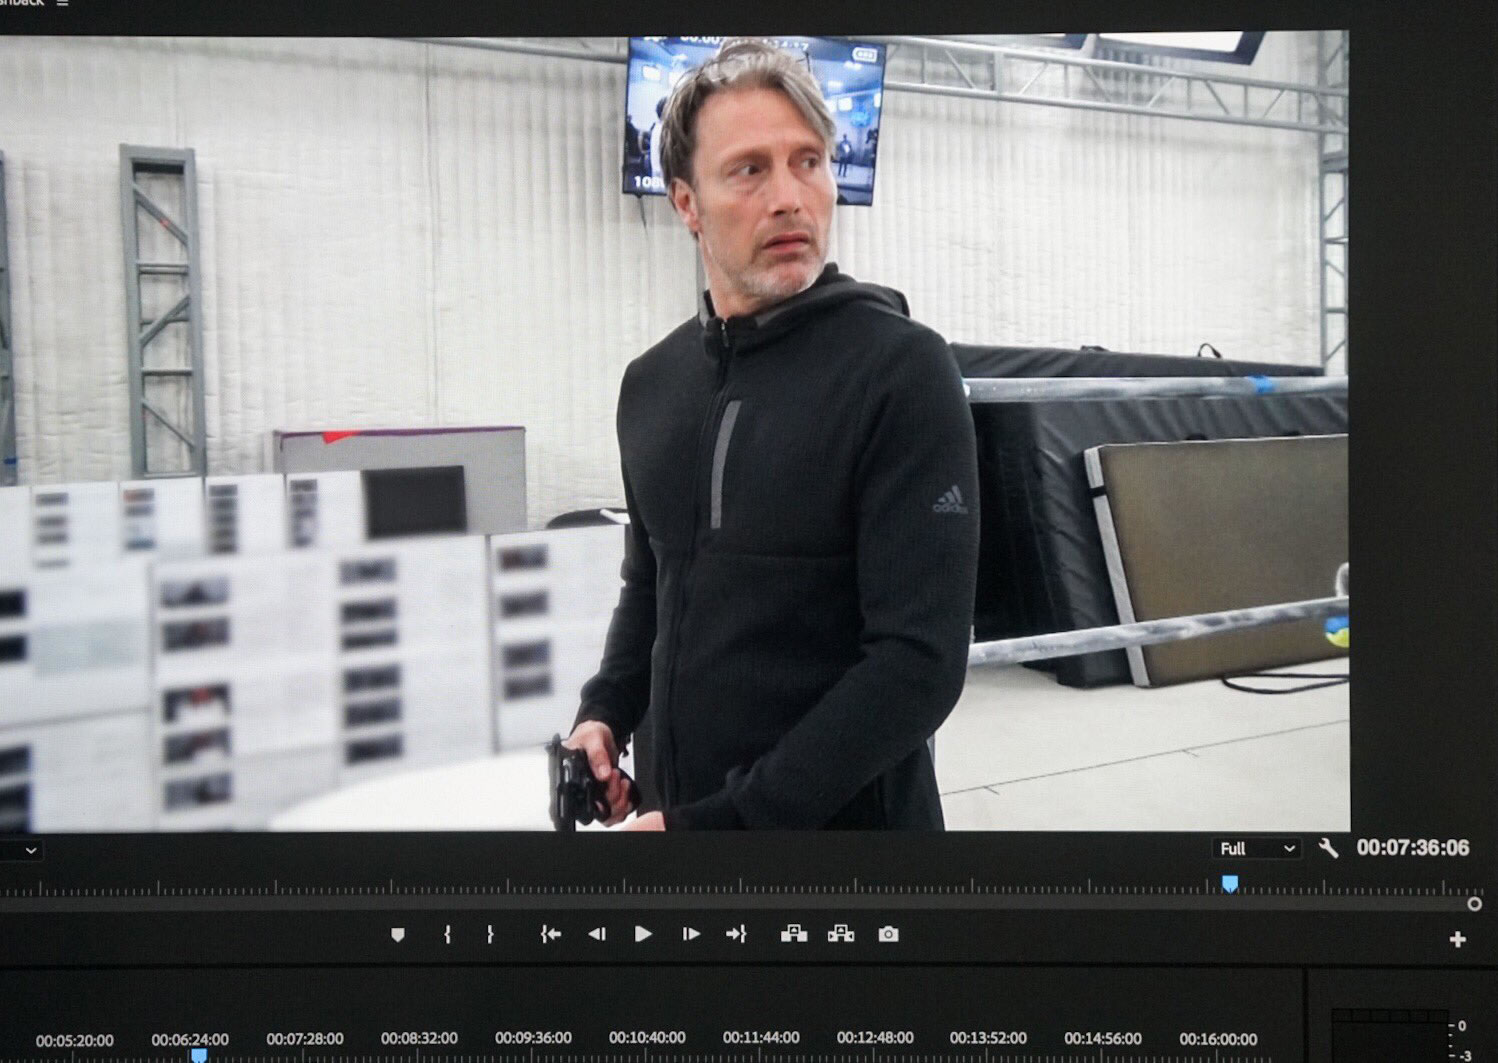 Mads Mikkelsen lors de la performance capture de Death Stranding, le 10 avril 2018